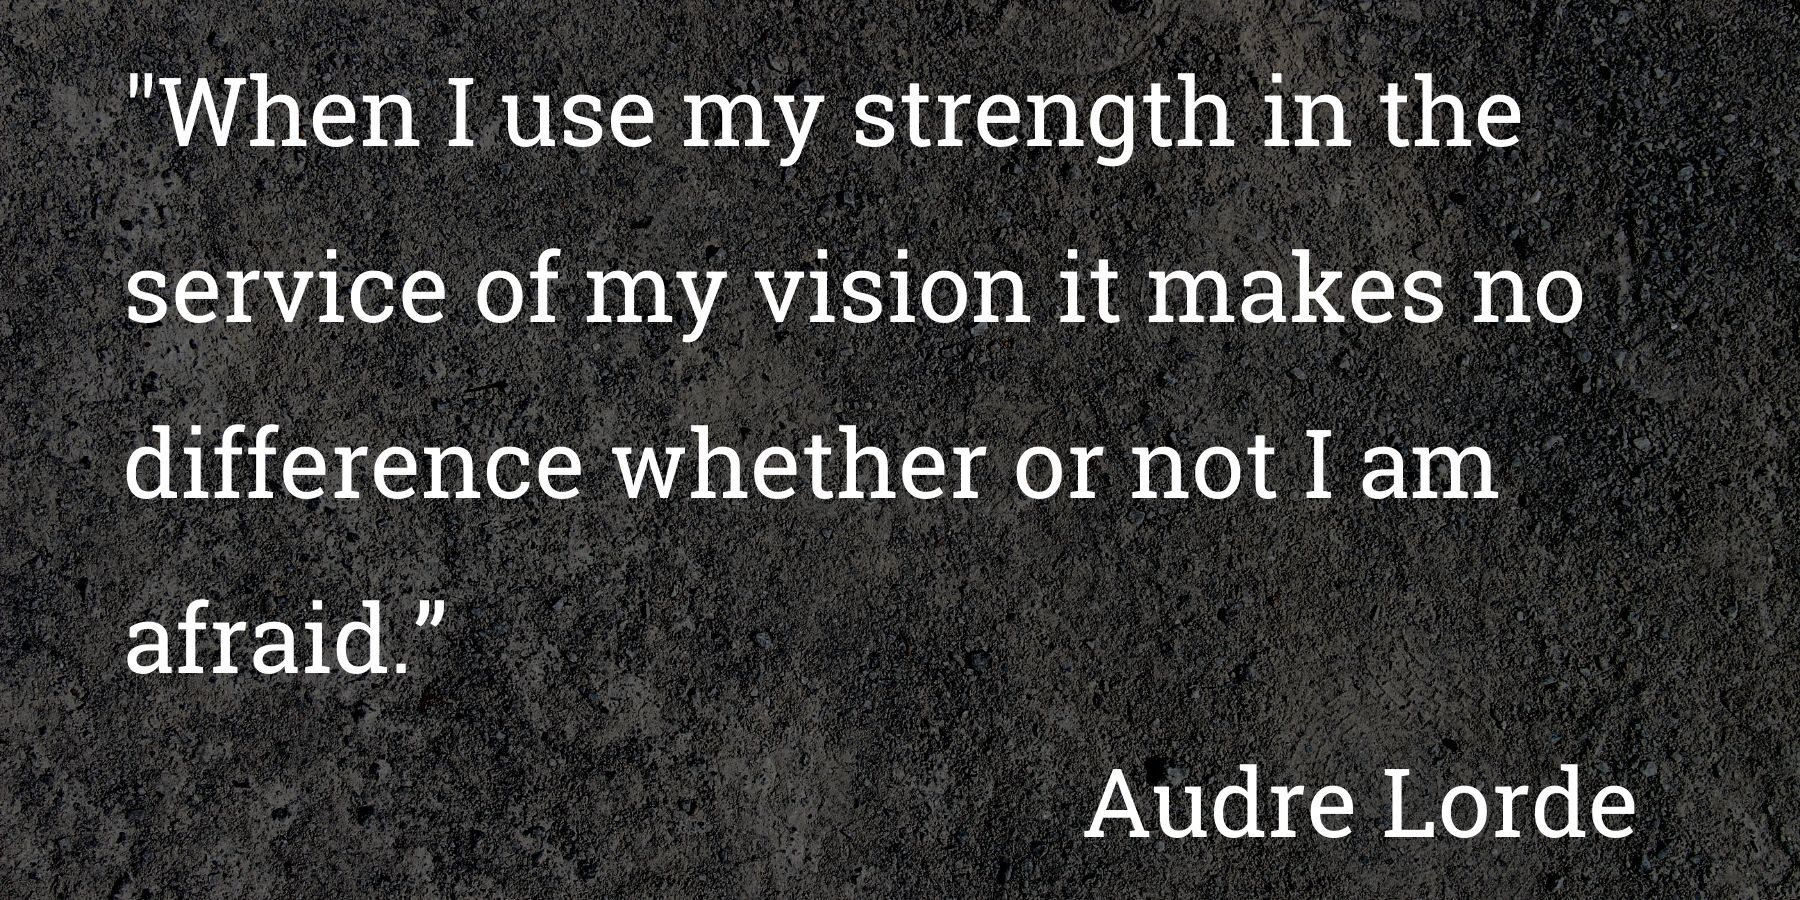 Text of quote by Audre Lorde